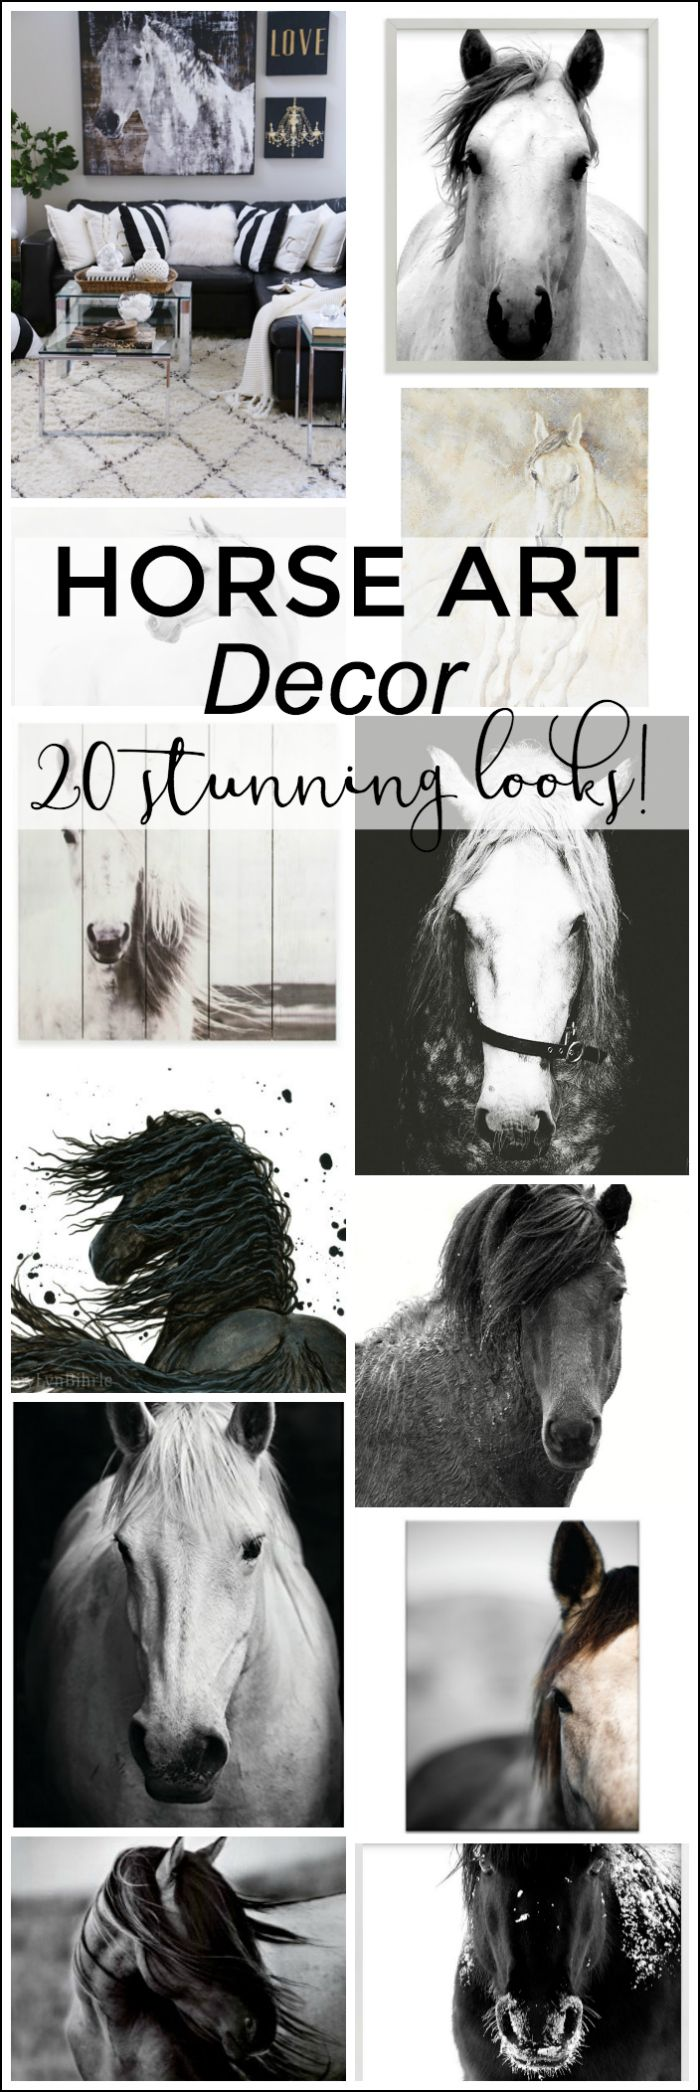 Love Horses? Me too!! Everyone asks me where I bought the horse art that hangs in my family room. See where I bought it and see 20 gorgeous horse art looks for your home!Horse art is a big design trend right now - decorate your home with your passion for these breathtaking animals. See black and white horse photography, neutral prints, modern and classic art prints... all with an equine vibe.